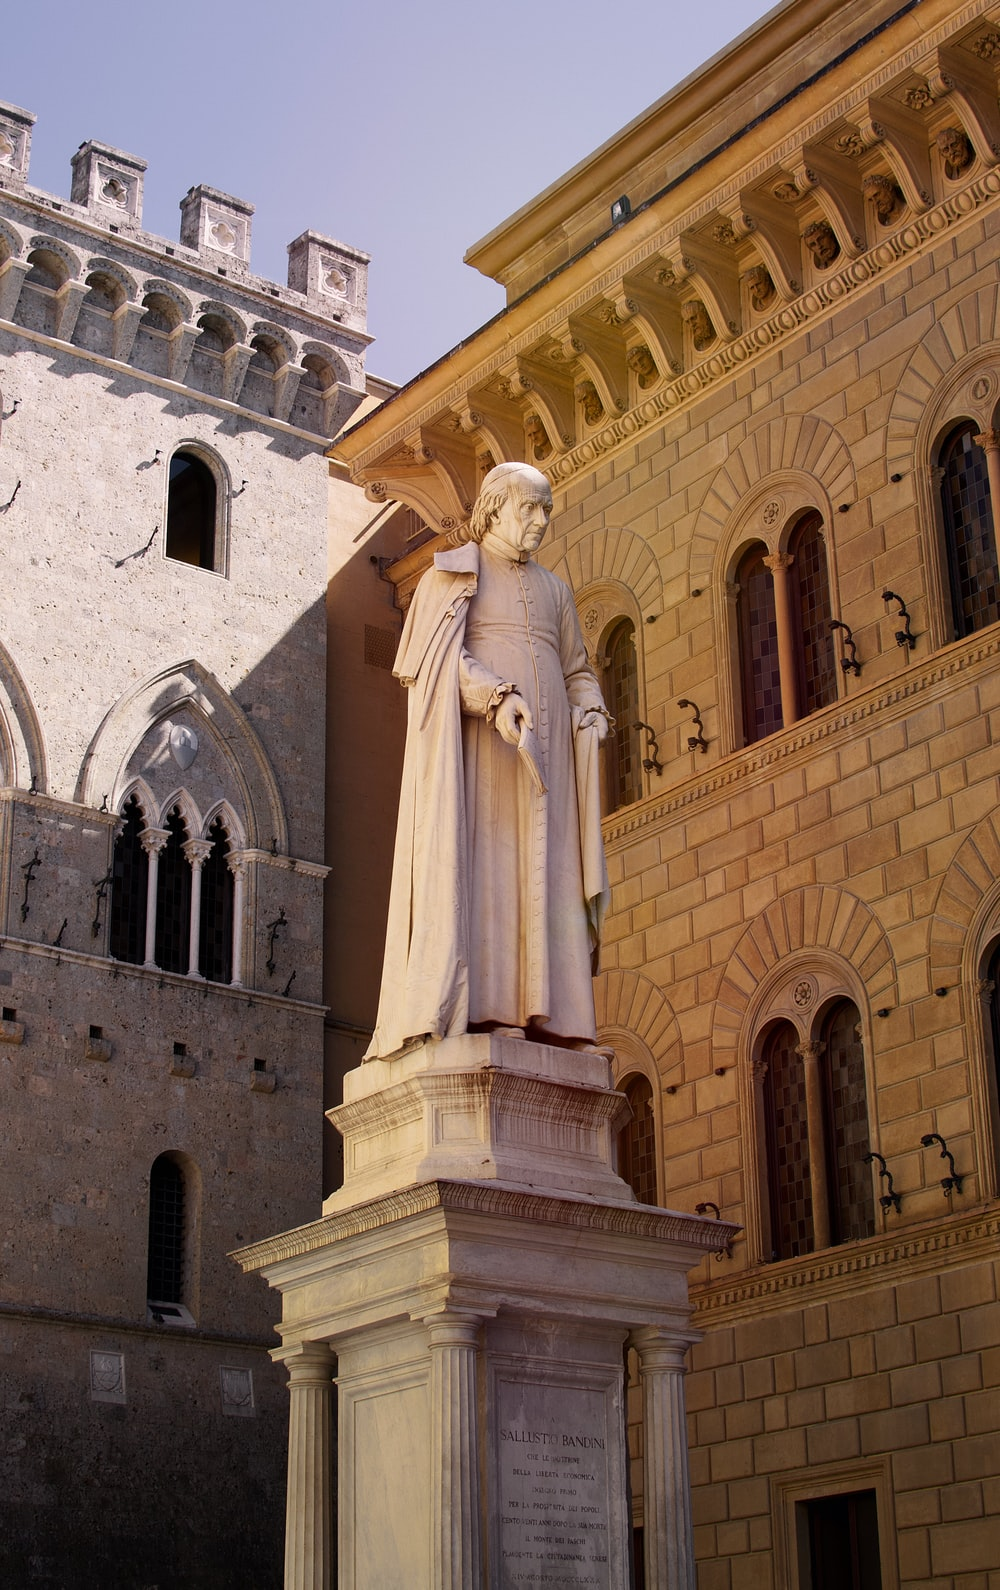 white statue of a woman in front of a building